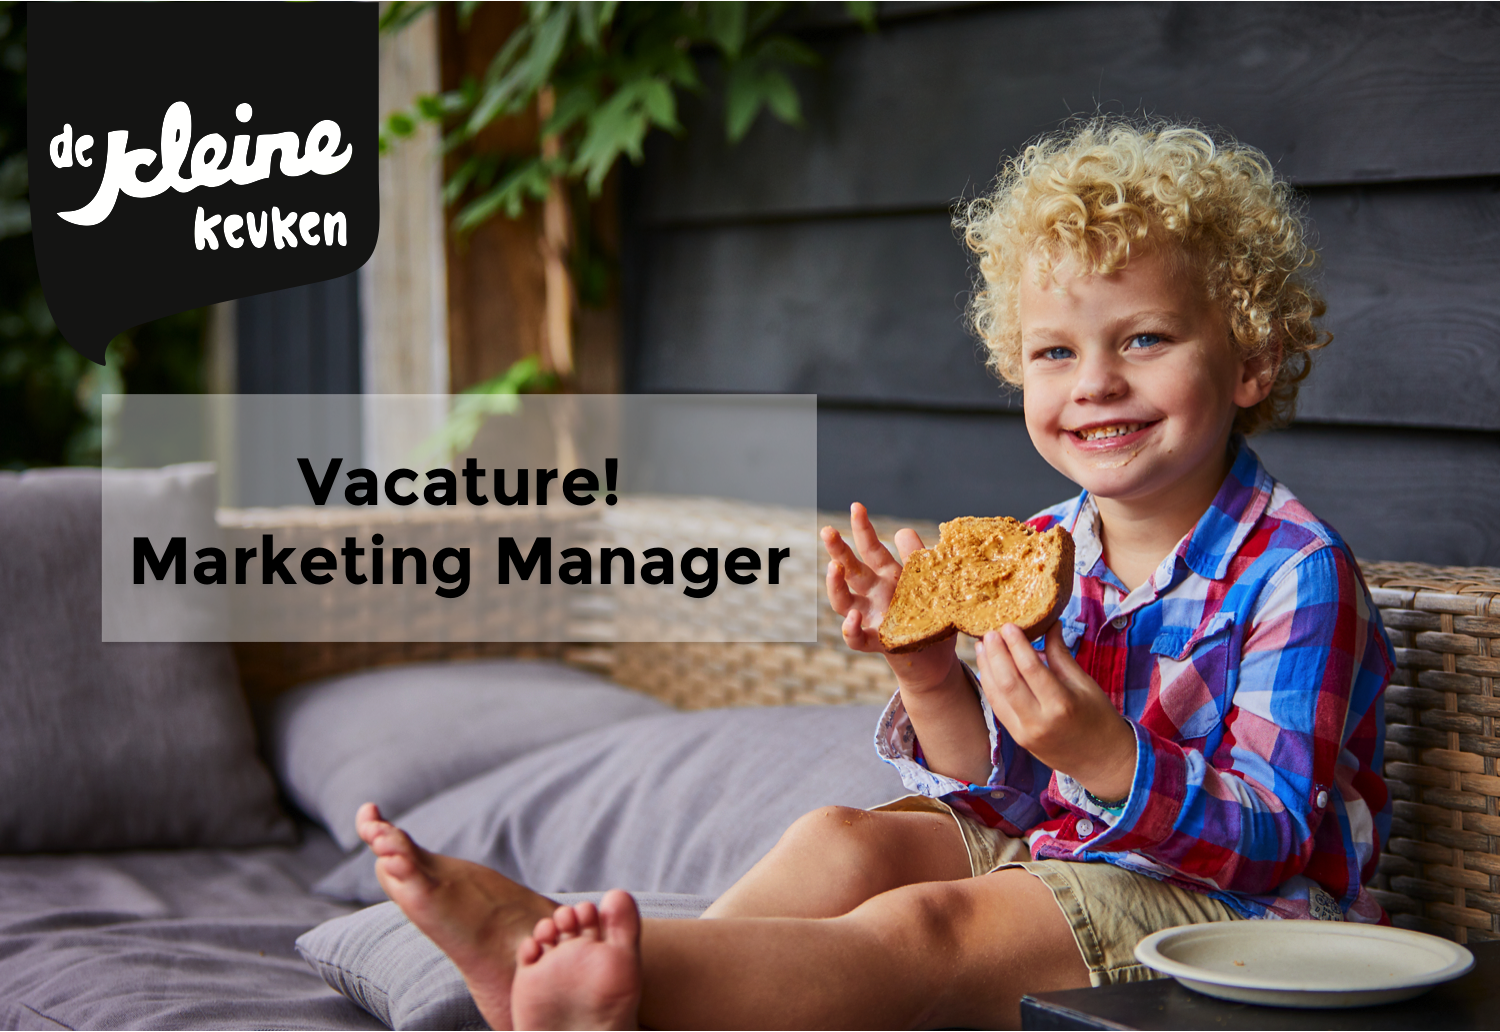 Vacature Marketing Manager